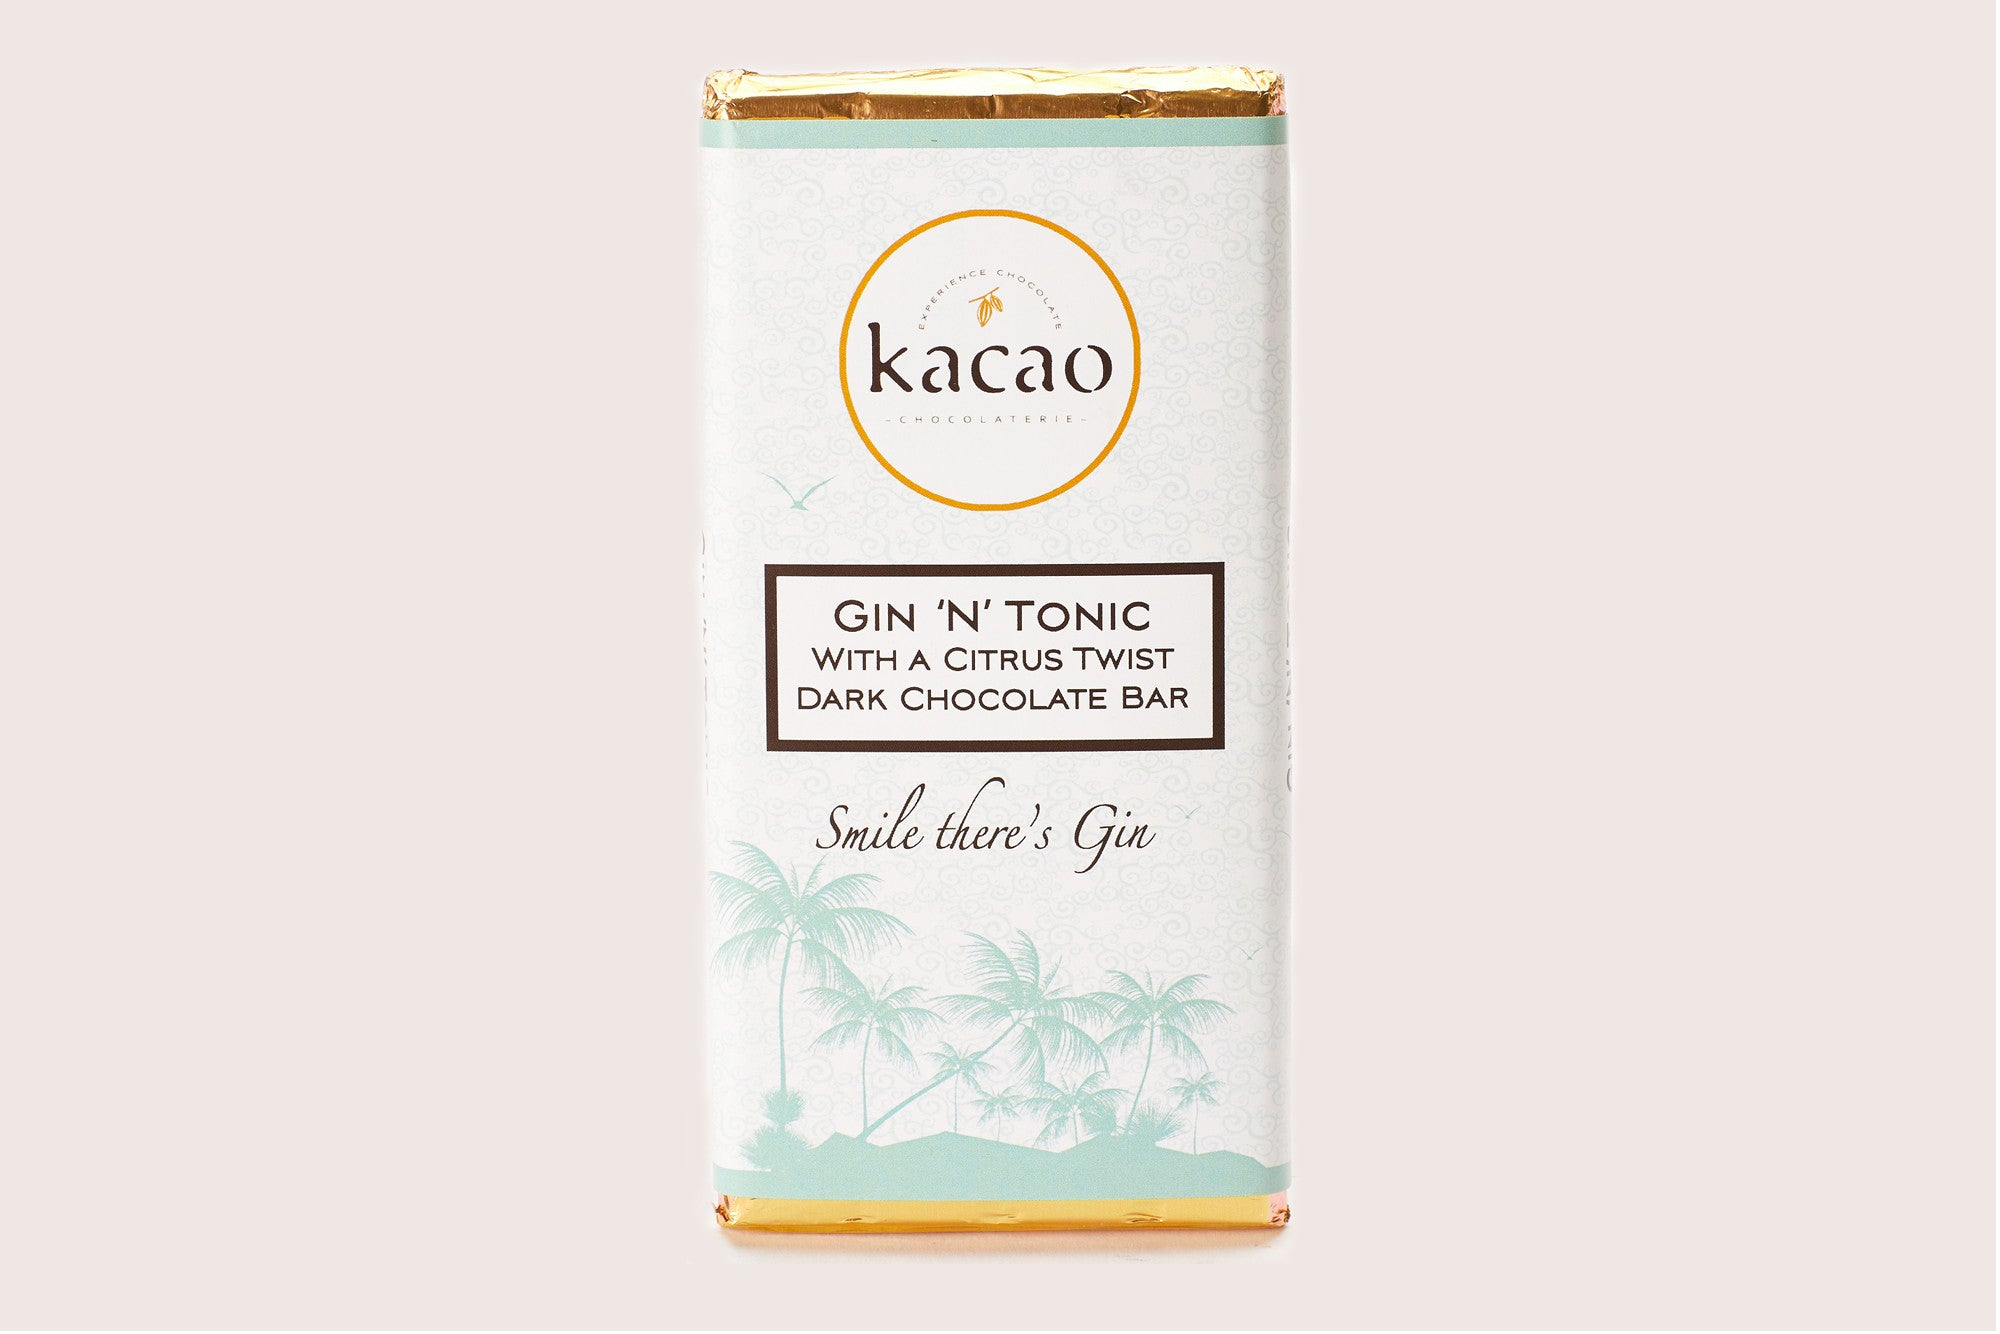 Gin 'N' Tonic Dark Chocolate Bar